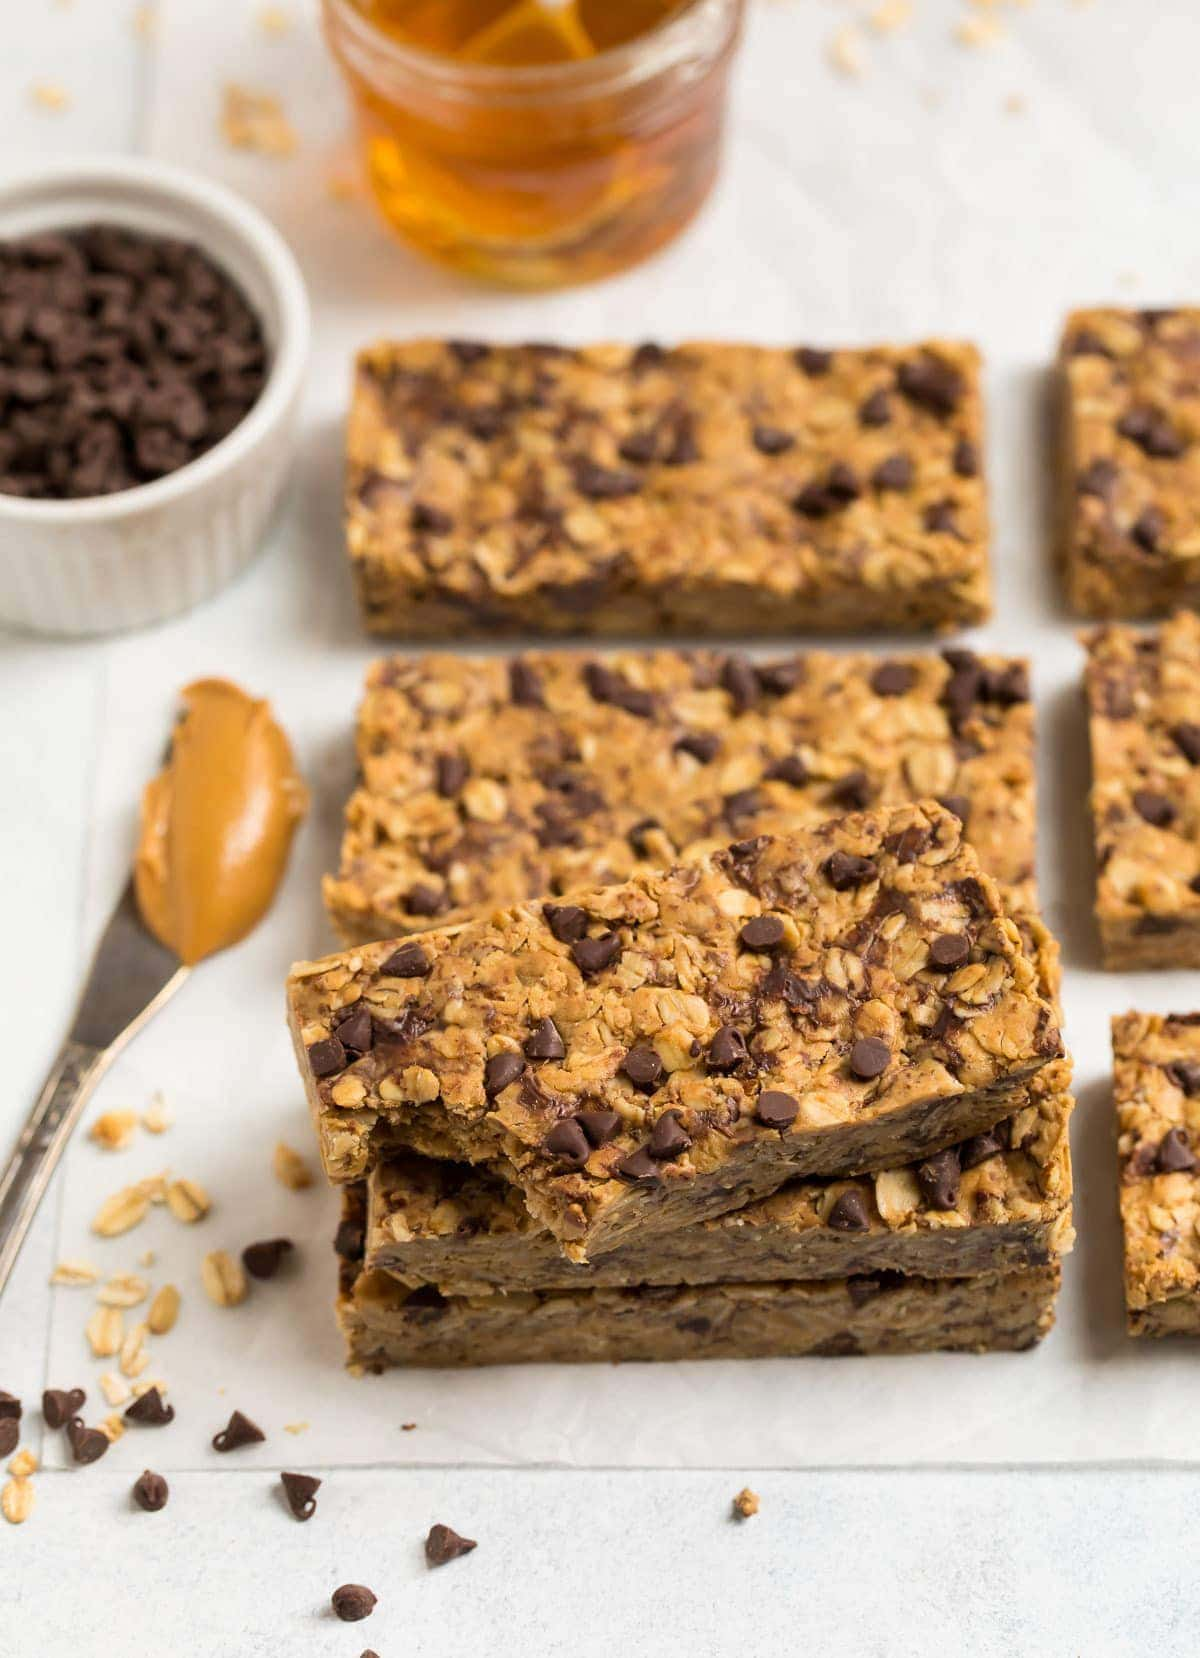 Soft and chewy homemade Peanut Butter Protein Bars with simple ingredients like oatmeal, honey, chocolate chips, and protein powder. No bake, healthy, and way better tasting than store bought!